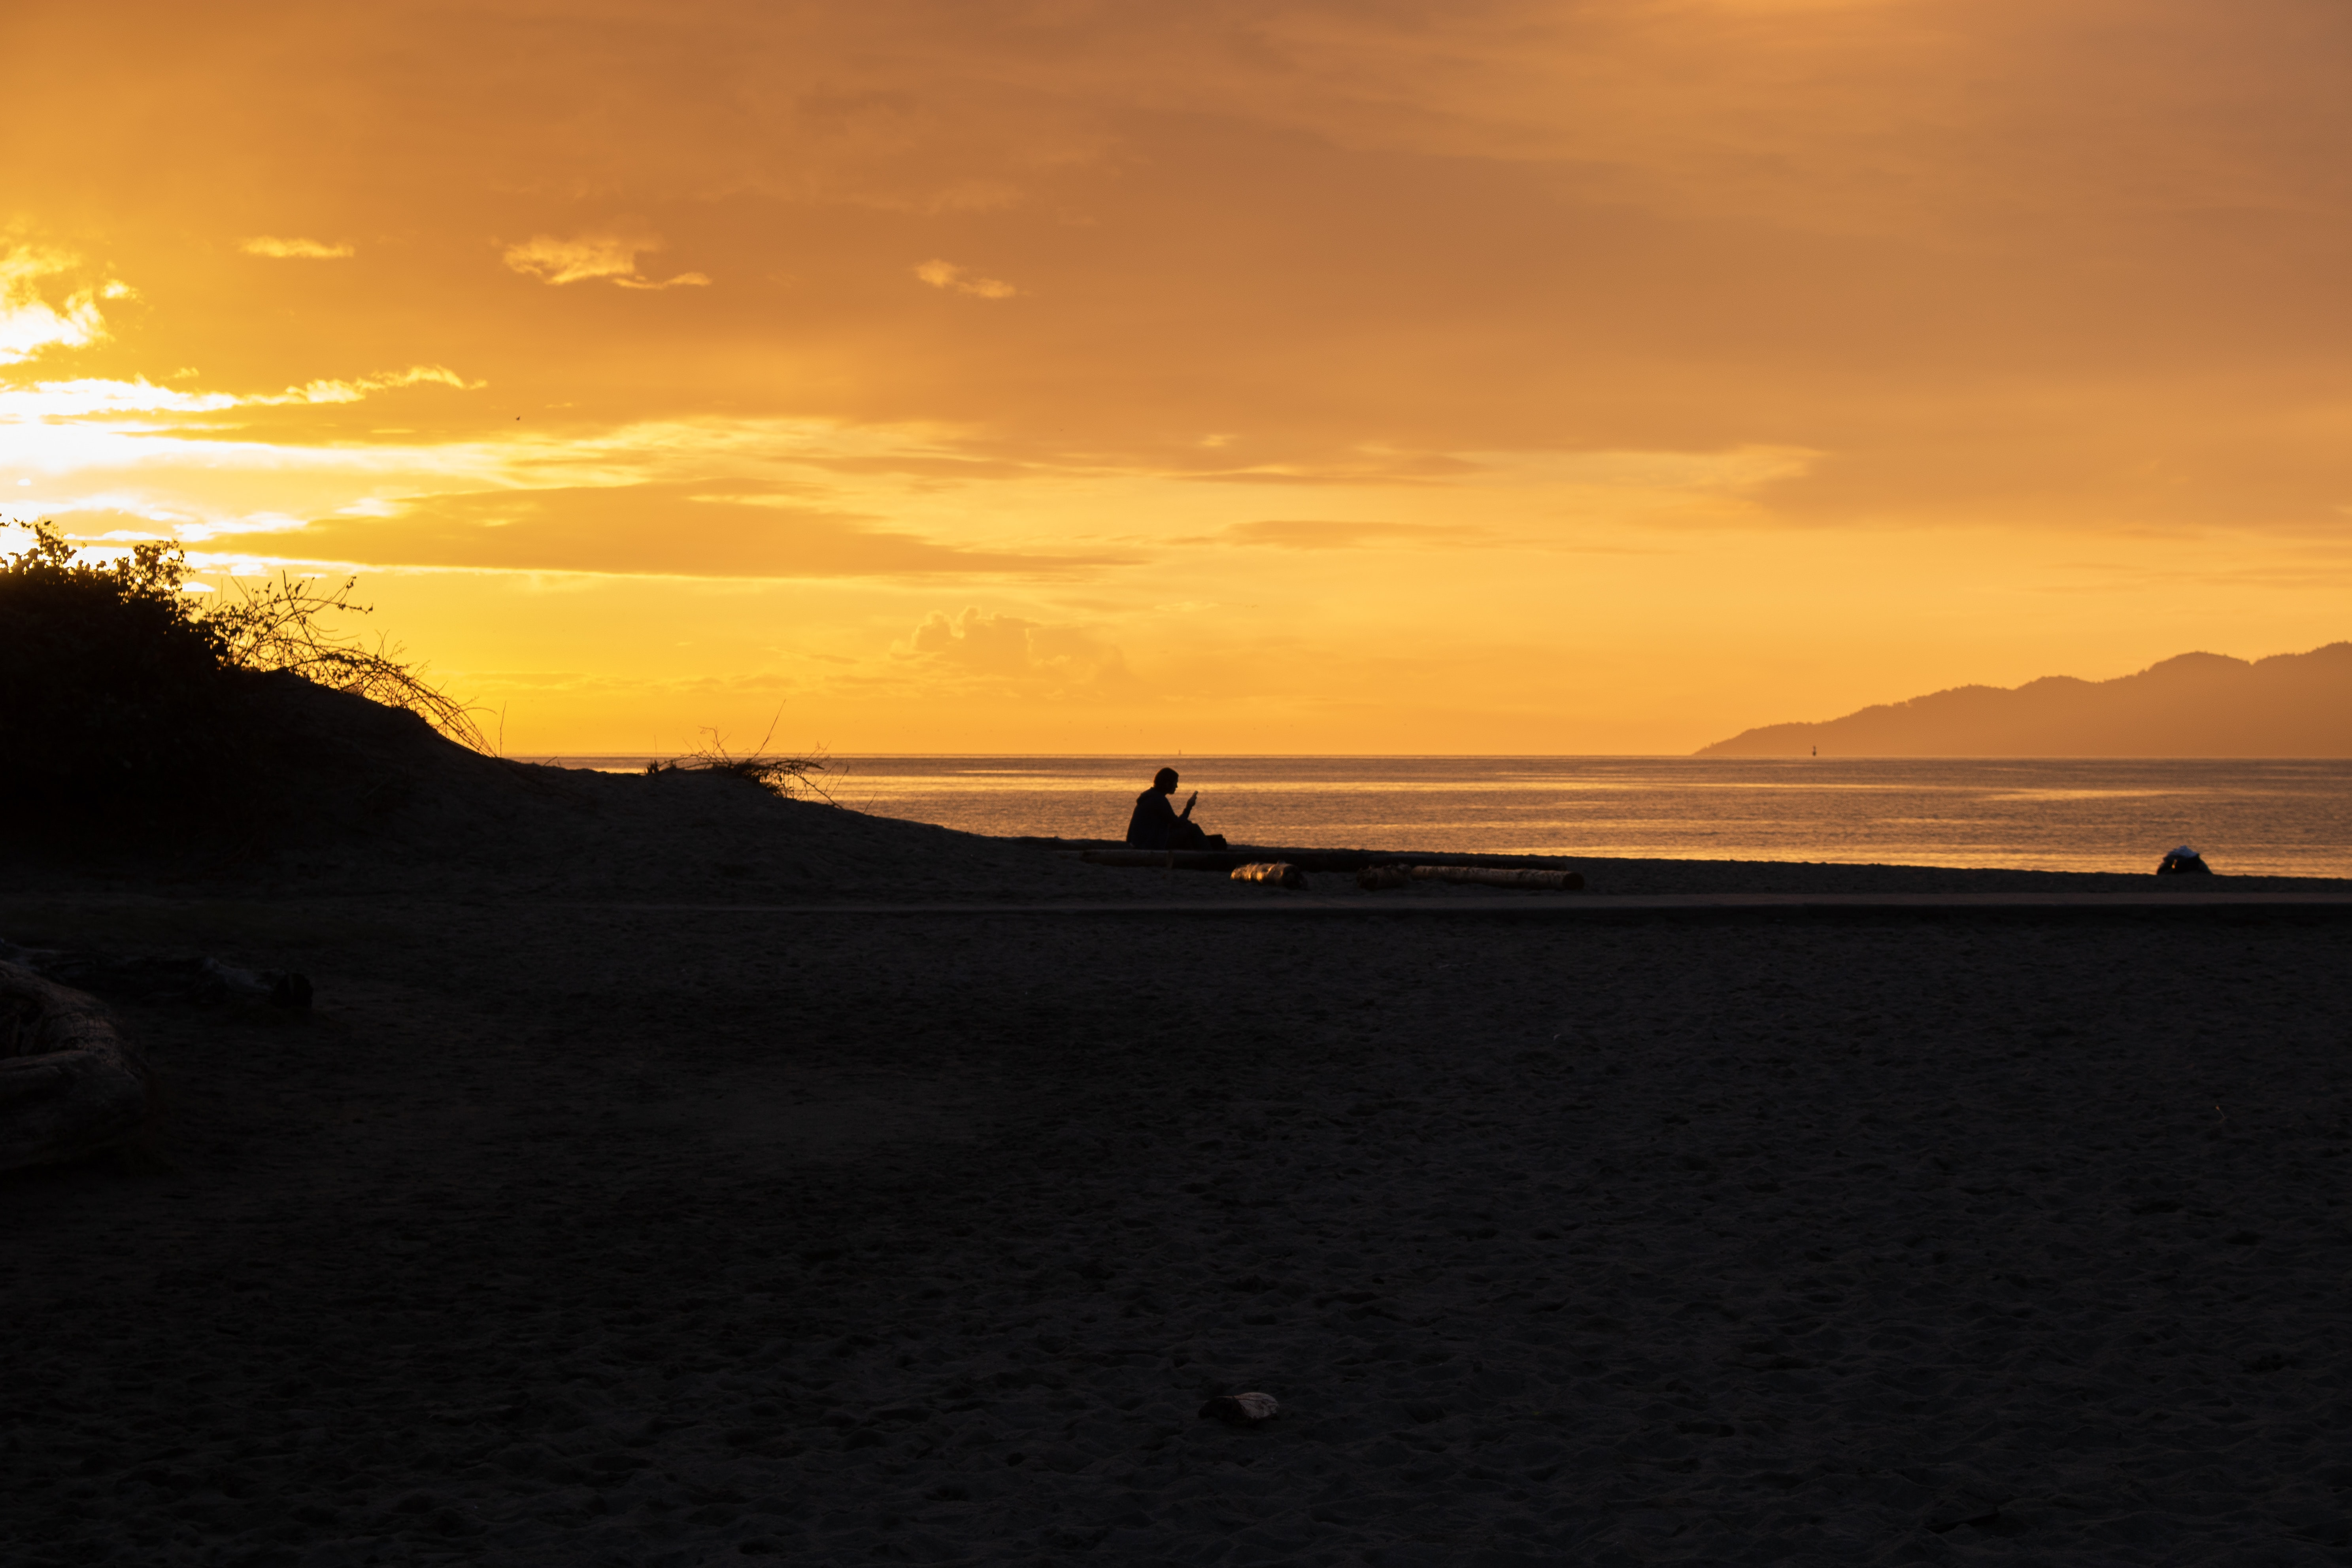 silhouette of man sitting on beach during golden hour